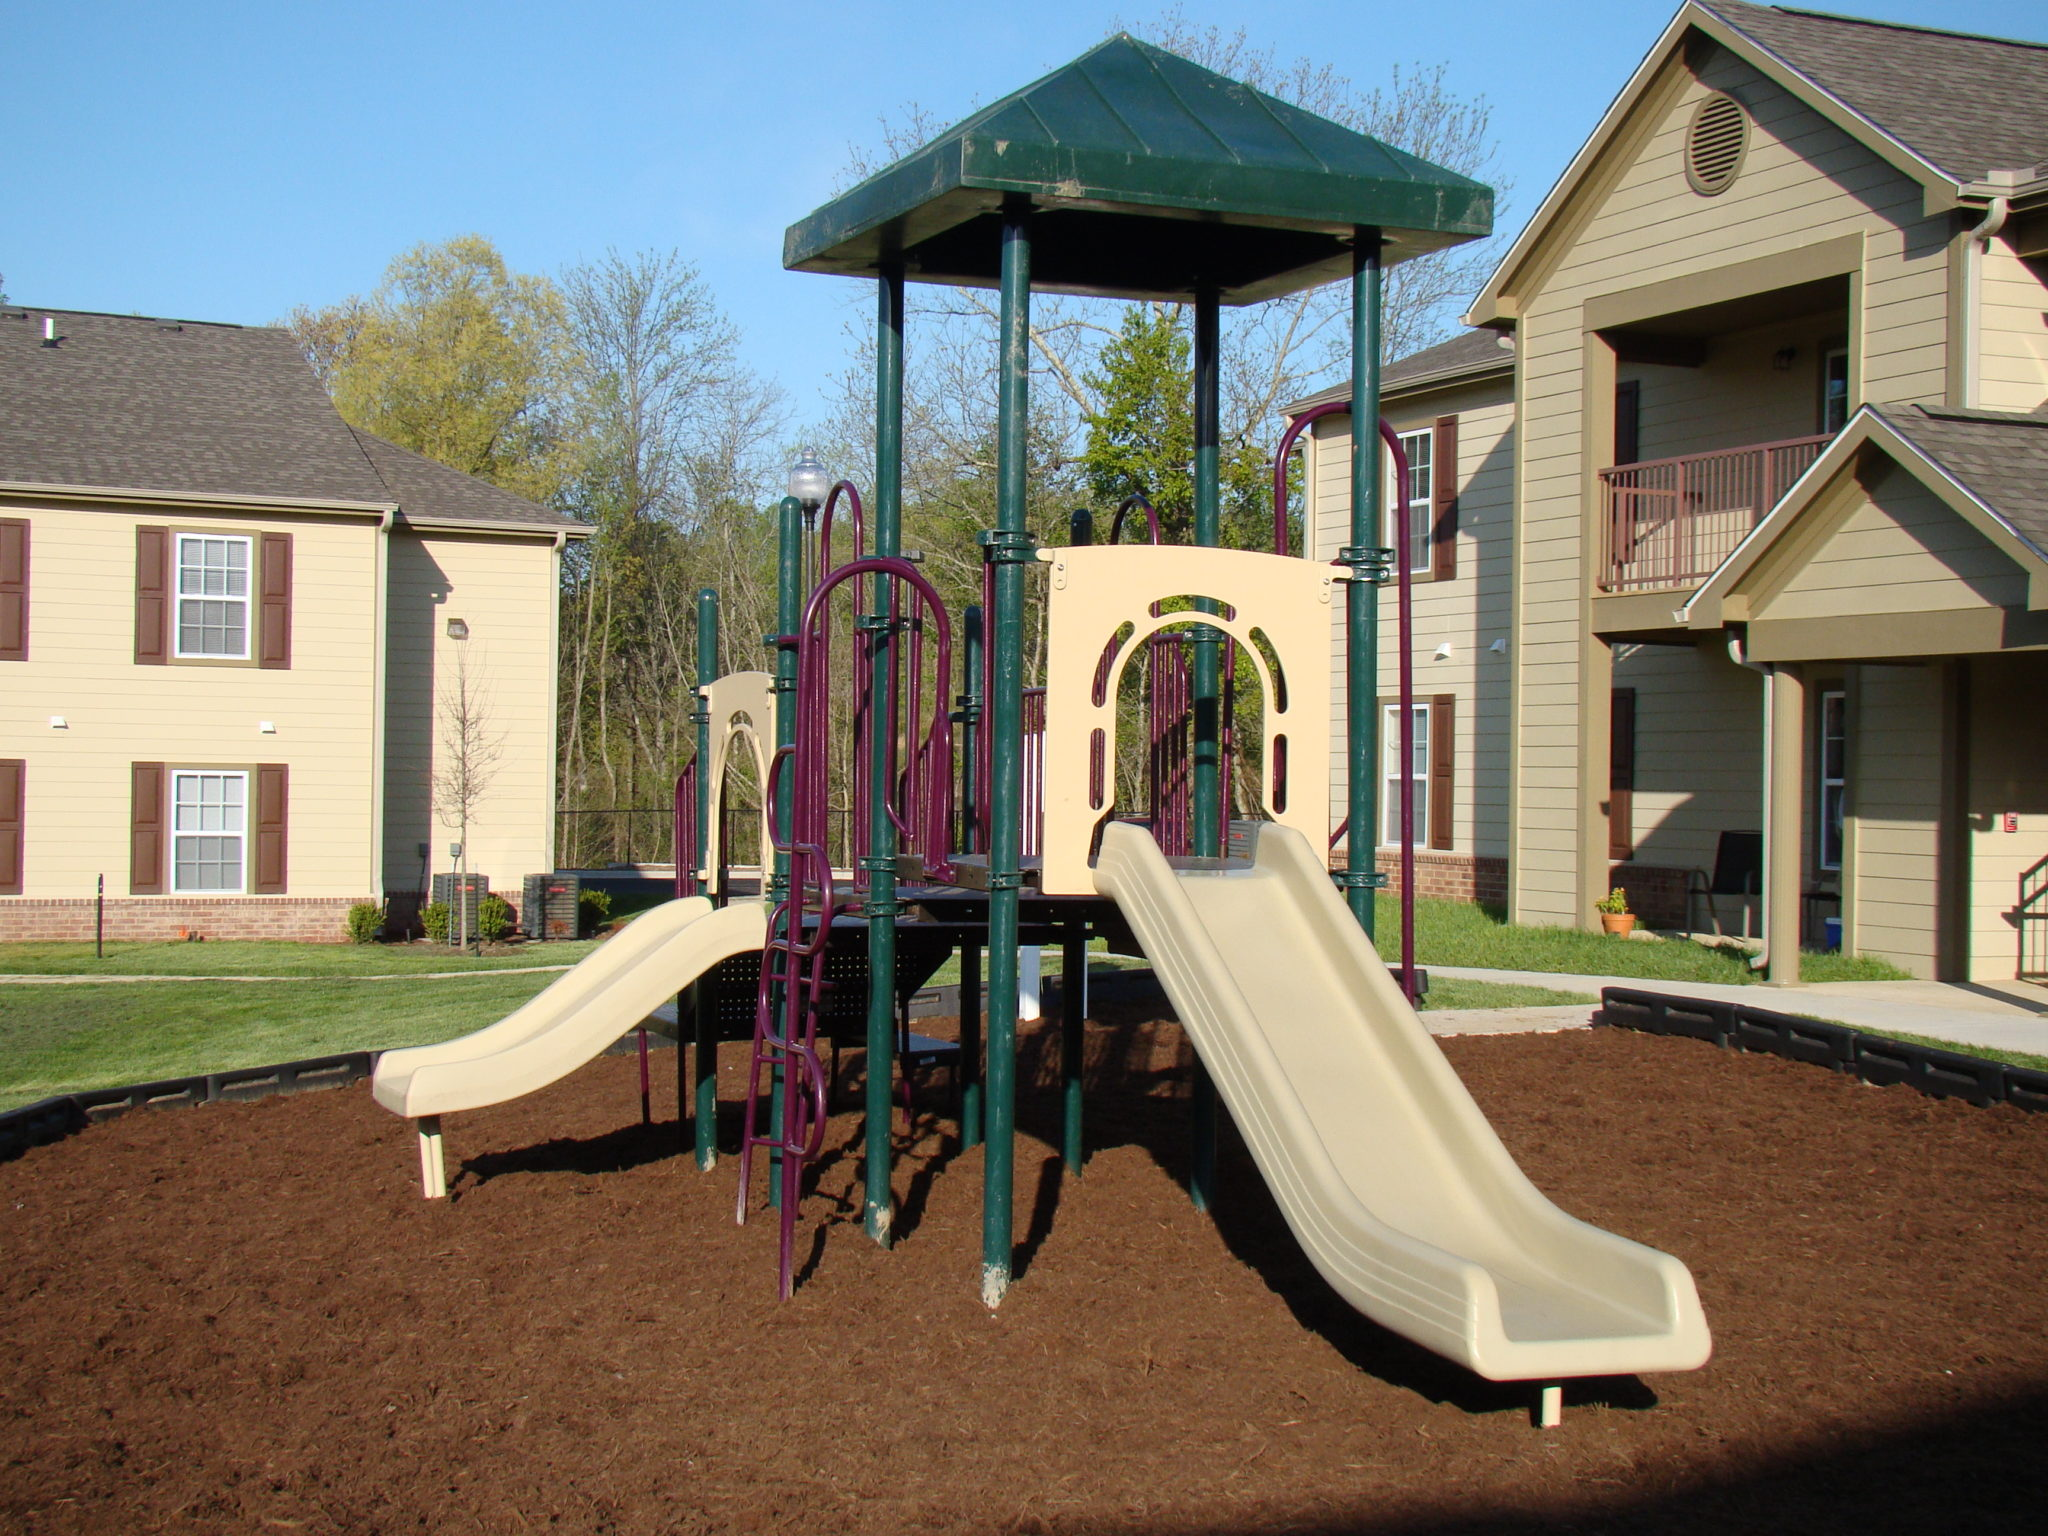 Cane Creek Cookevile Tennessee Playscape